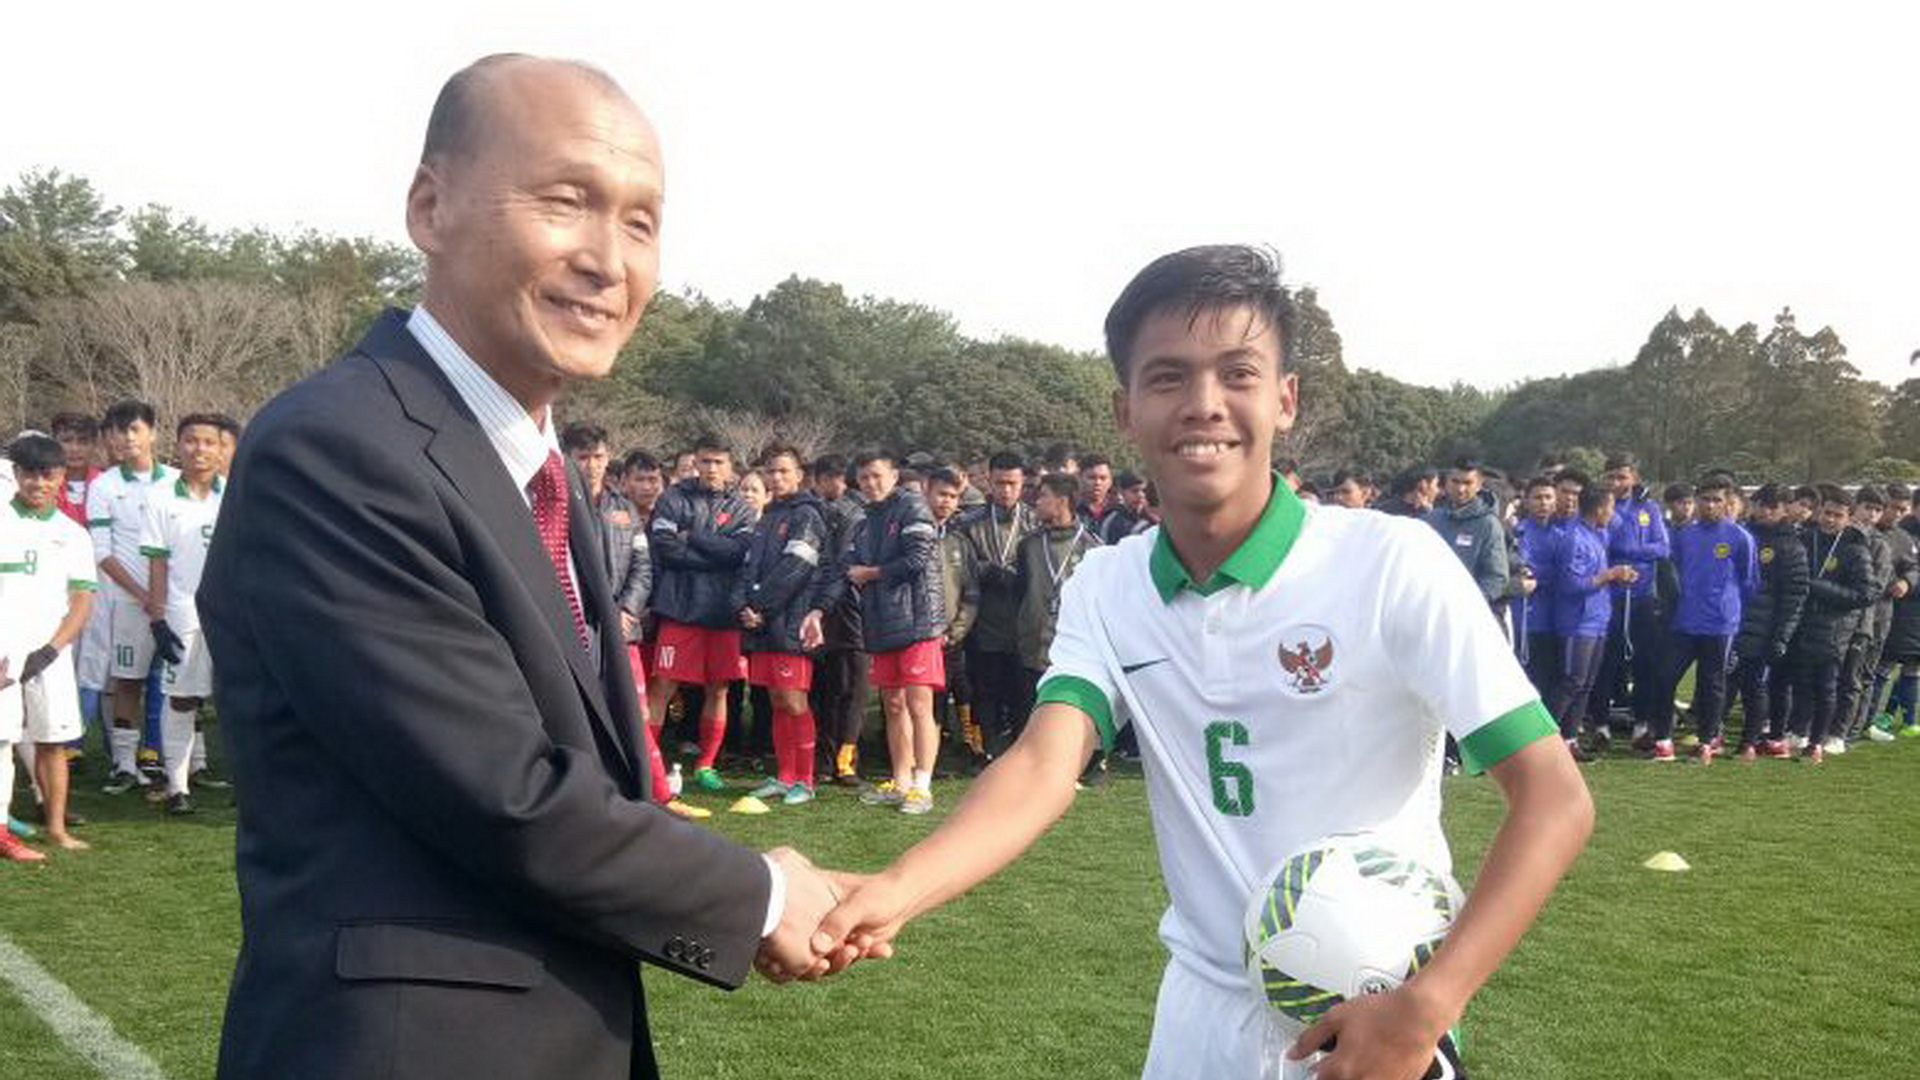 David Maulana - Timnas Indonesia U-16